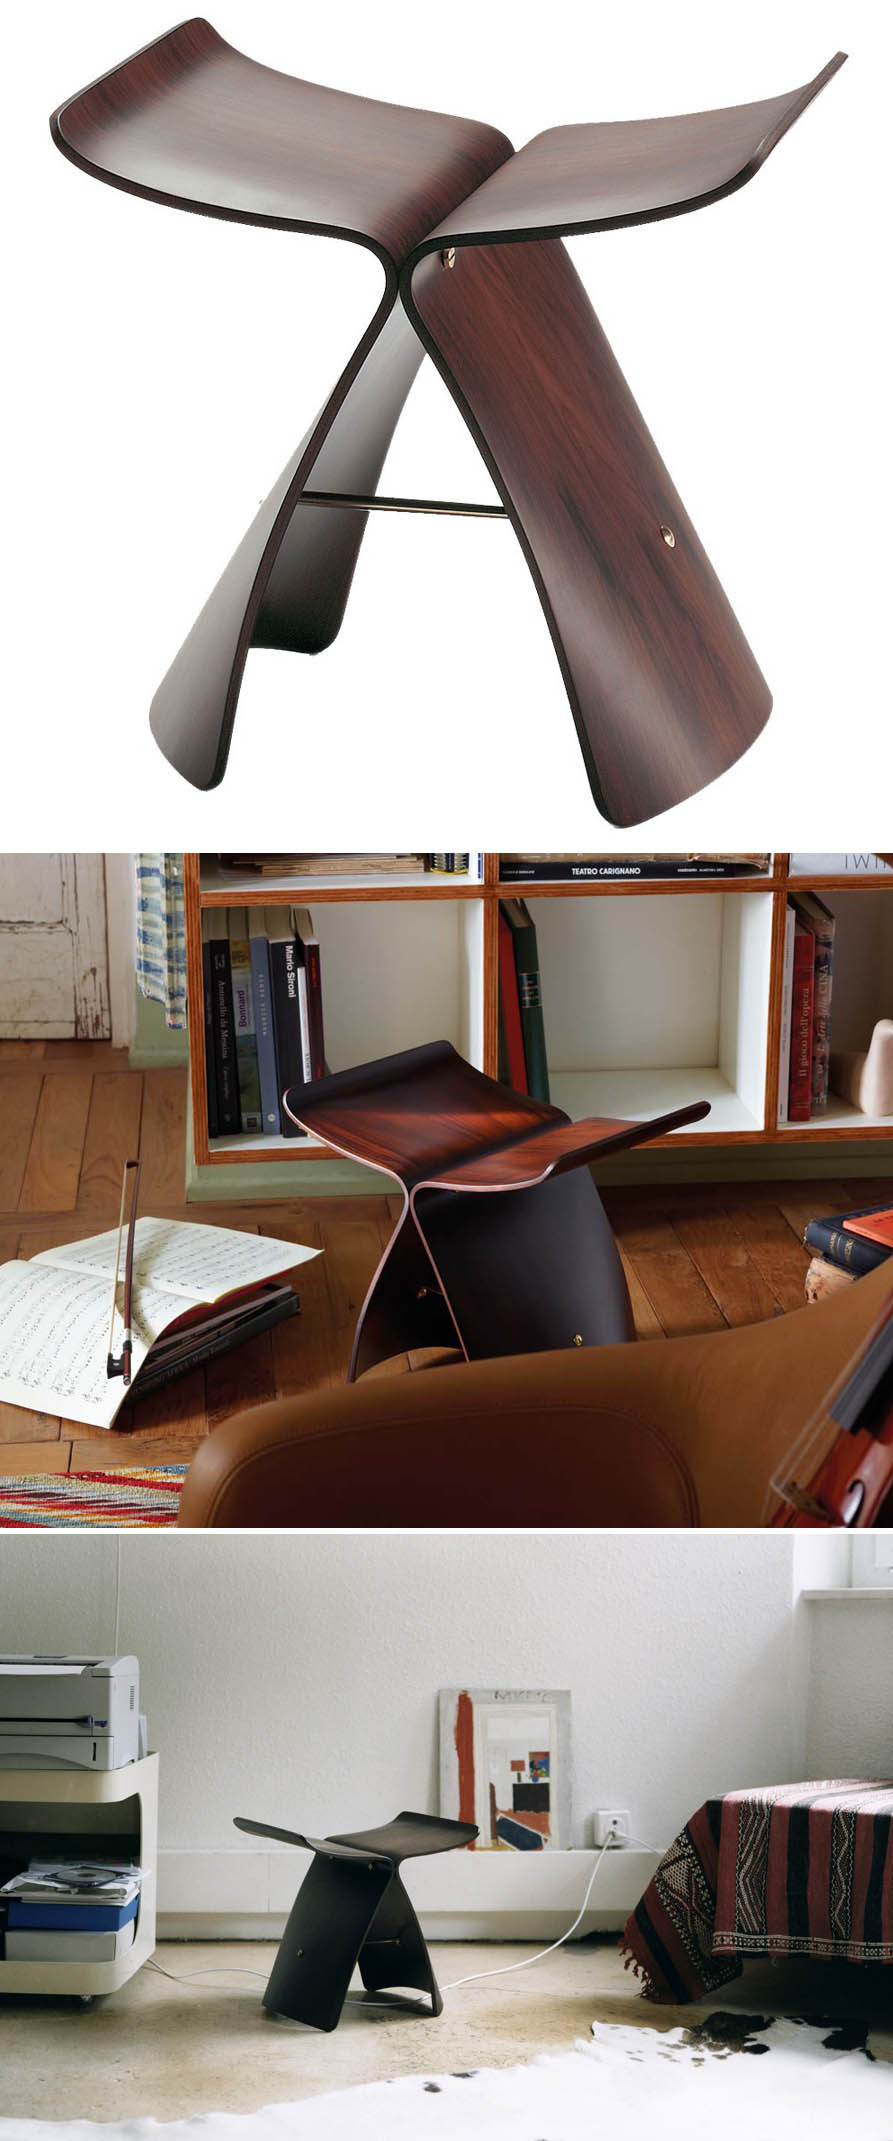 sori yanagi butterfly rosewood vitra butterfly stools. Black Bedroom Furniture Sets. Home Design Ideas